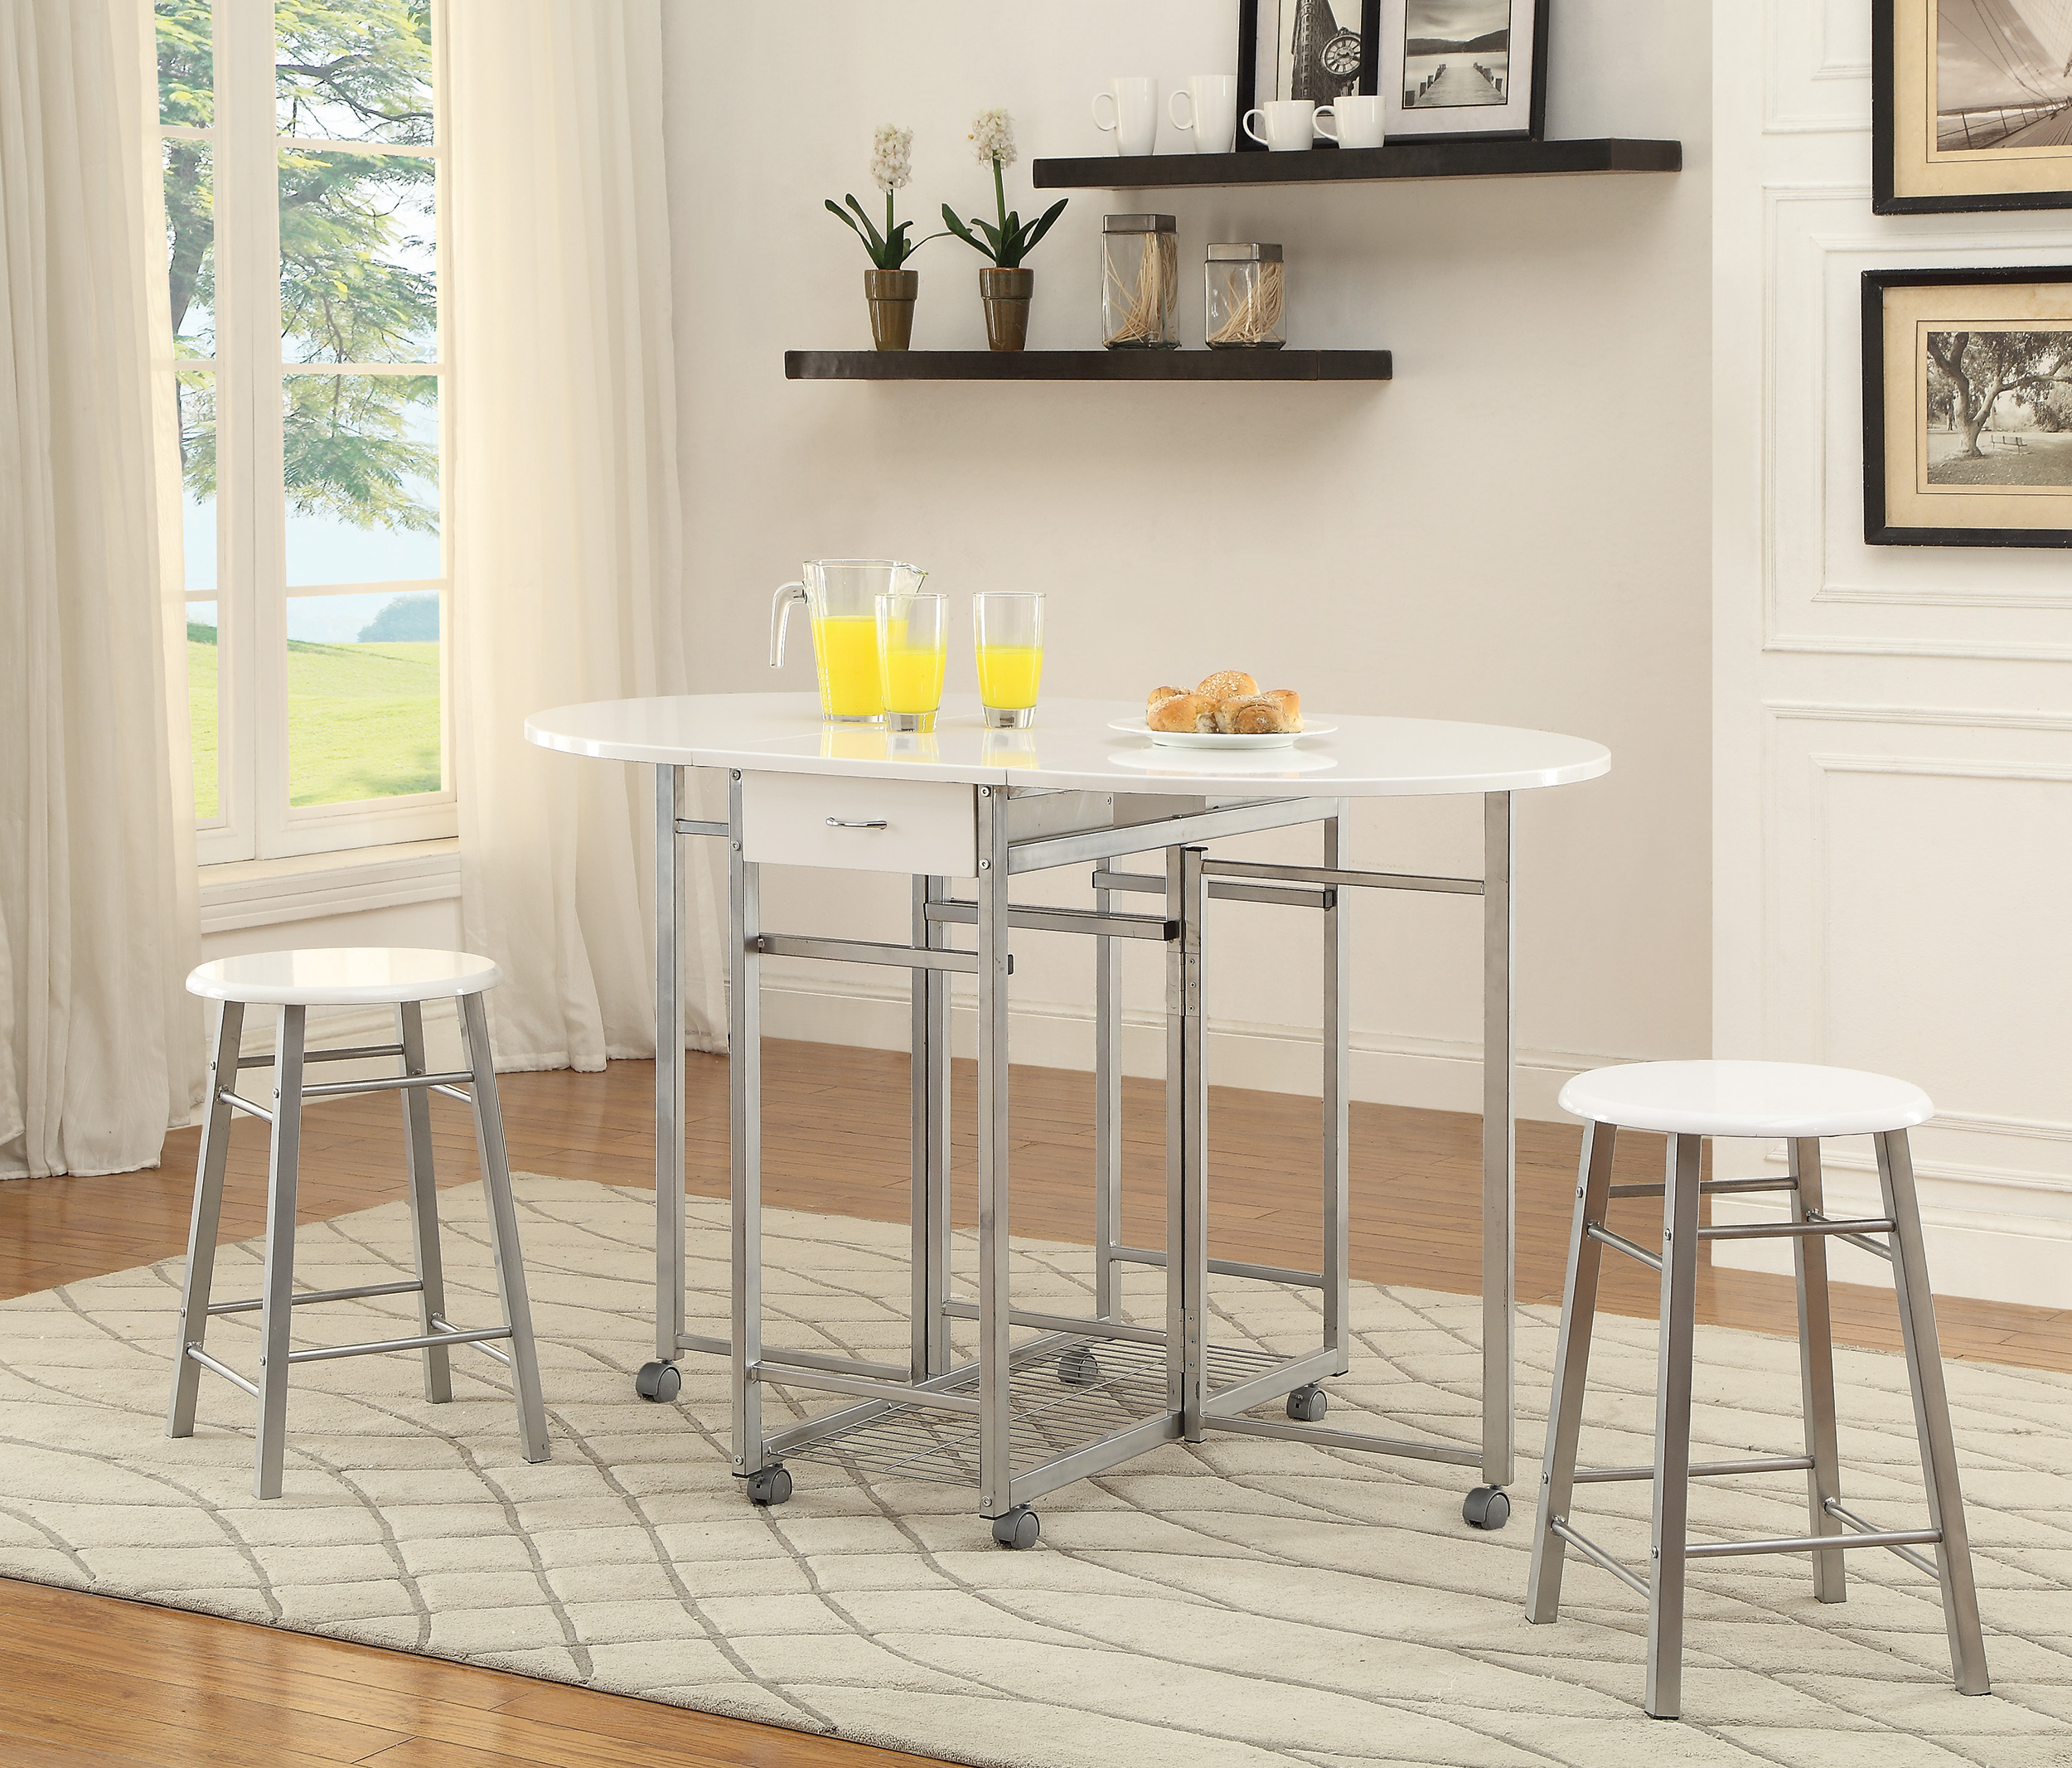 Coaster Bar Units and Bar Tables 3-Piece Dining Set - Item Number: 100080